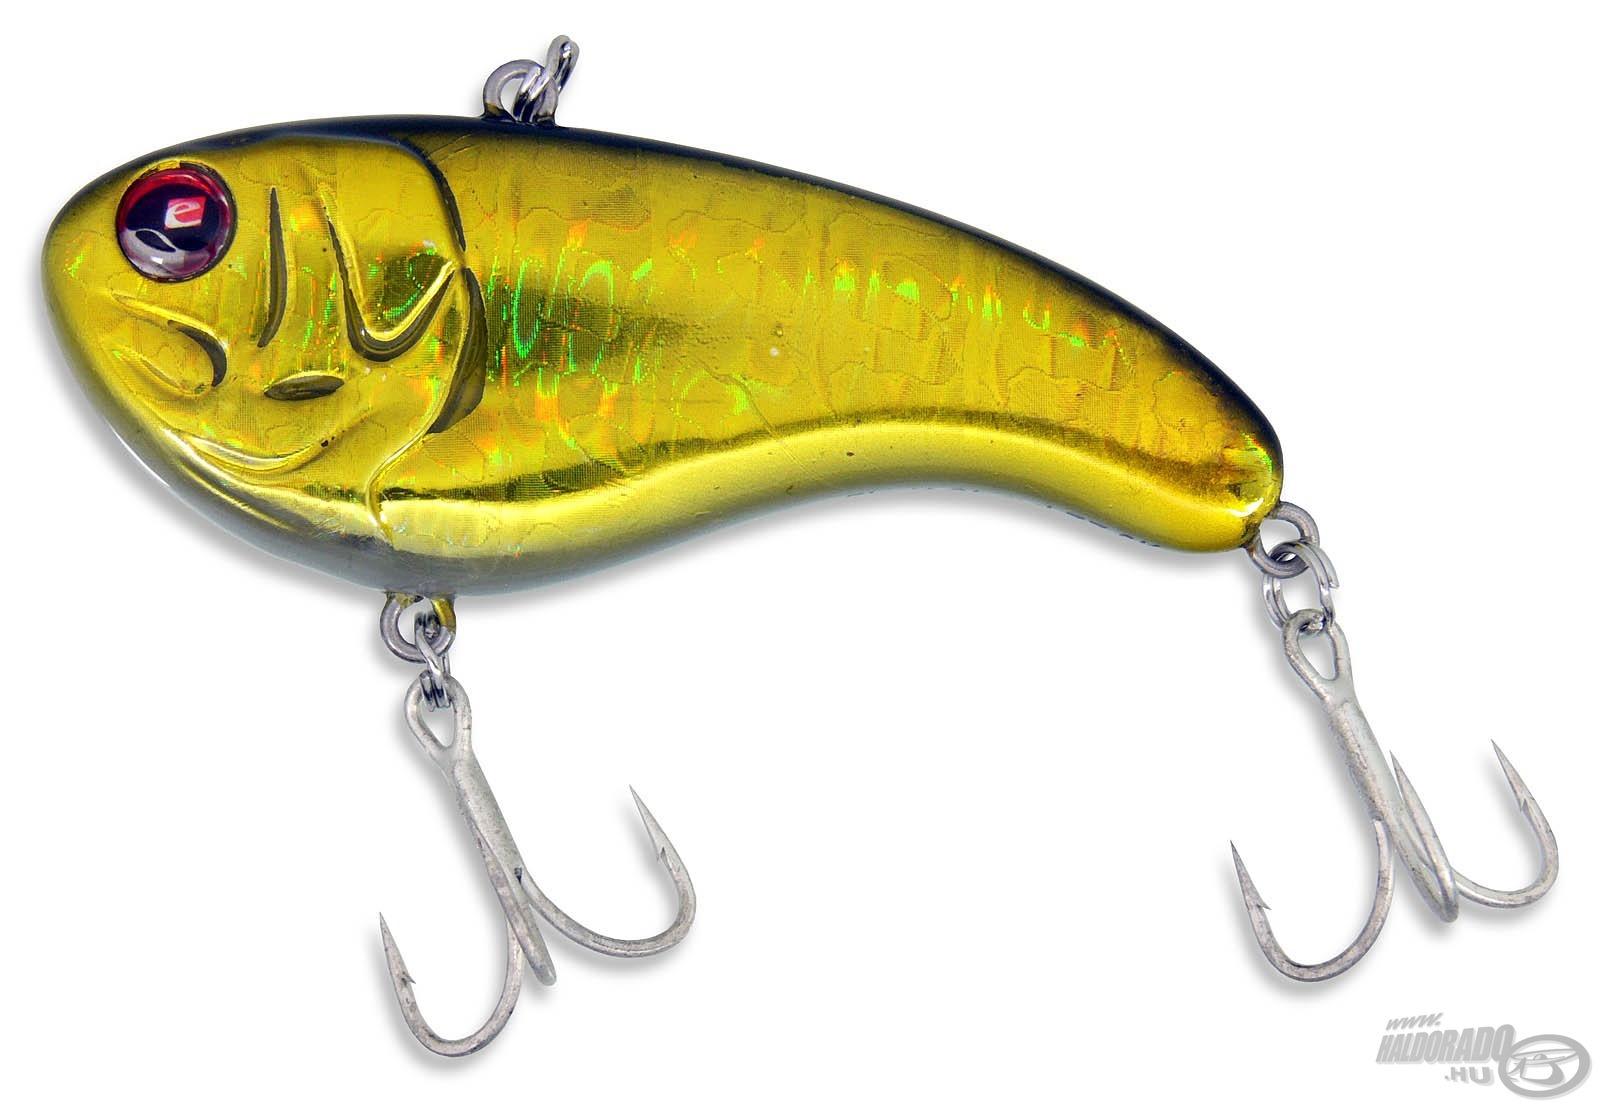 SEBILE Flatt Shad 77 OG 3490Ft